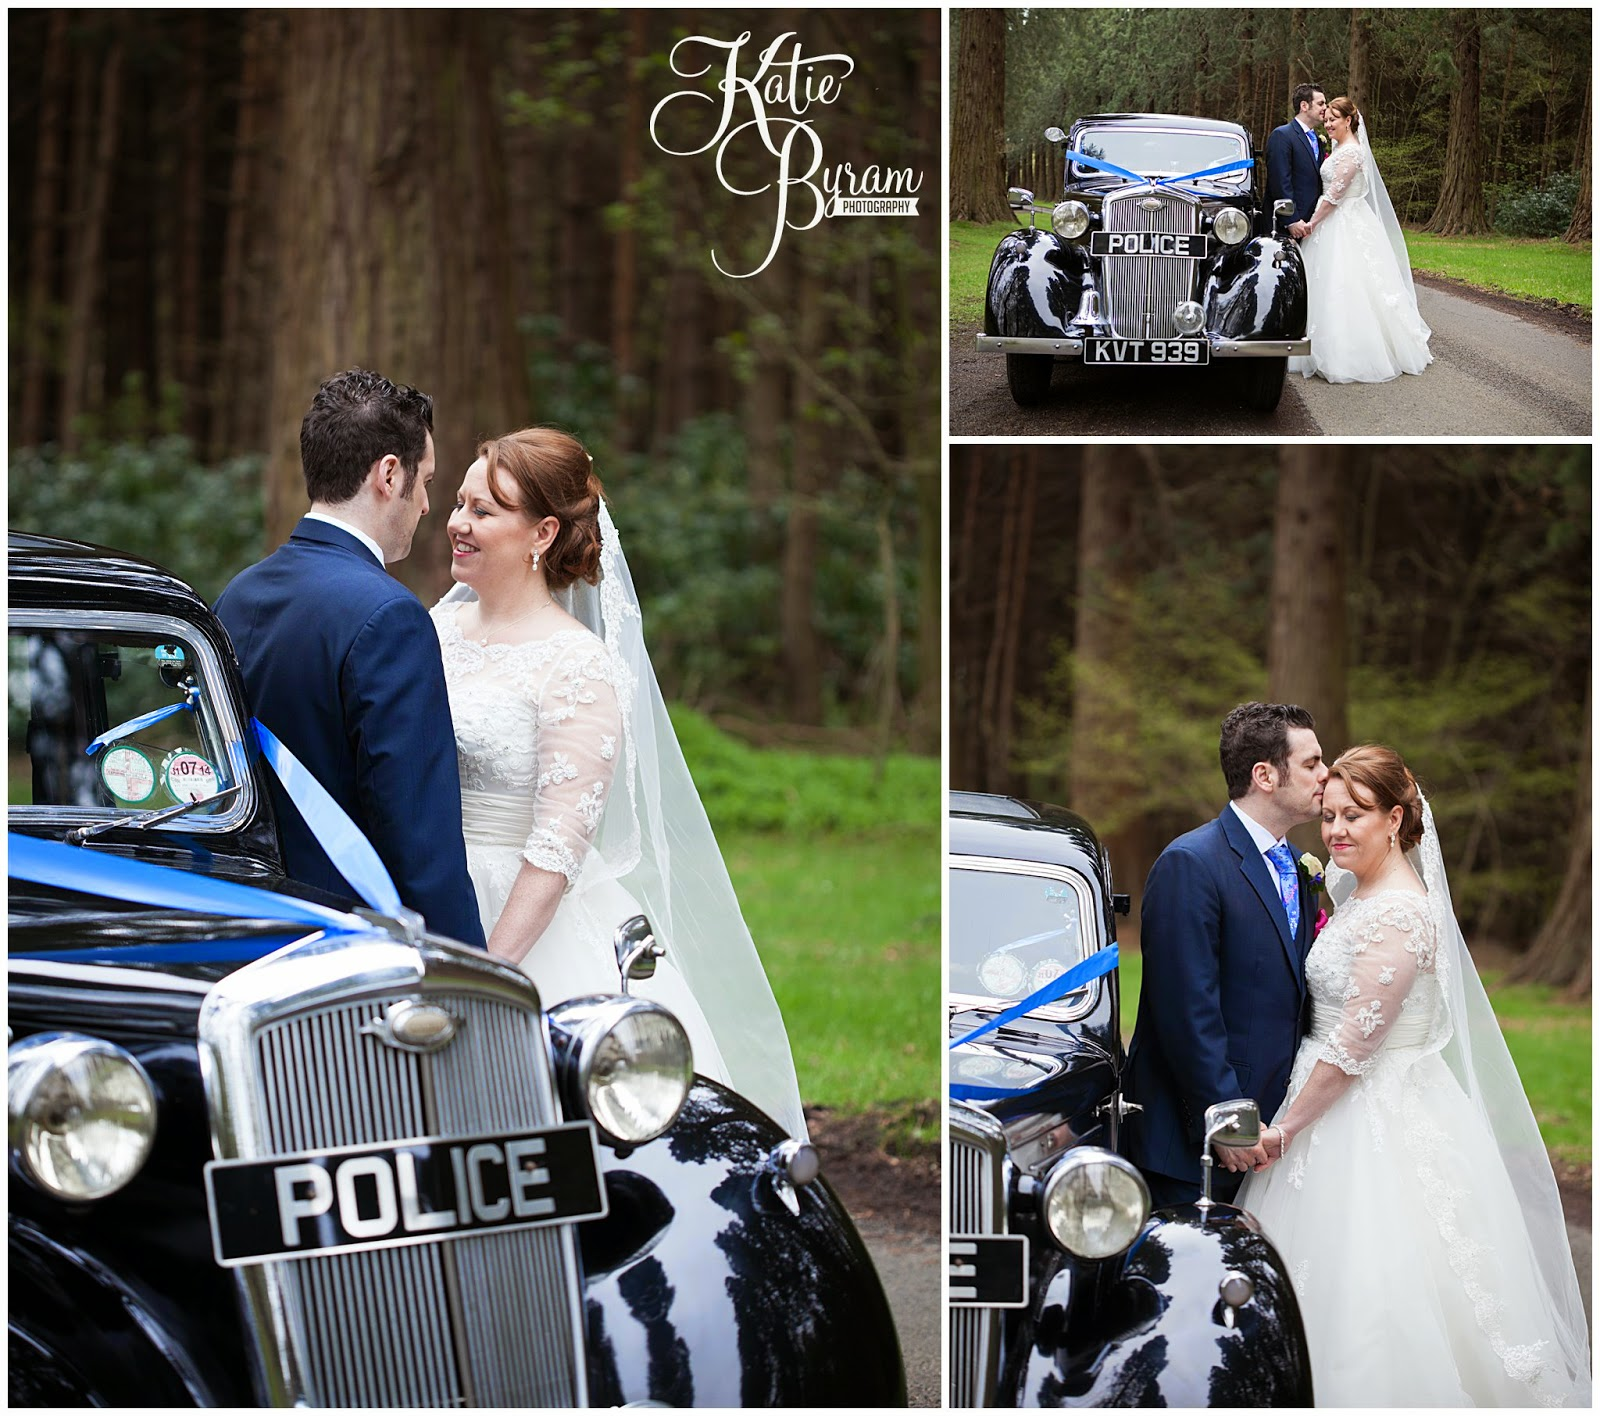 wedding police car, police car vintage, brooklands wedding cars, minsteracres wedding, lord crewe arms wedding, dog at wedding, scoops and smiles, katie byram photography, ice cream van hire newcastle, newcastle wedding photography, relaxed wedding photography, quirky, 50's wedding, alternative wedding, irregular choice, wedding dress with sleeves